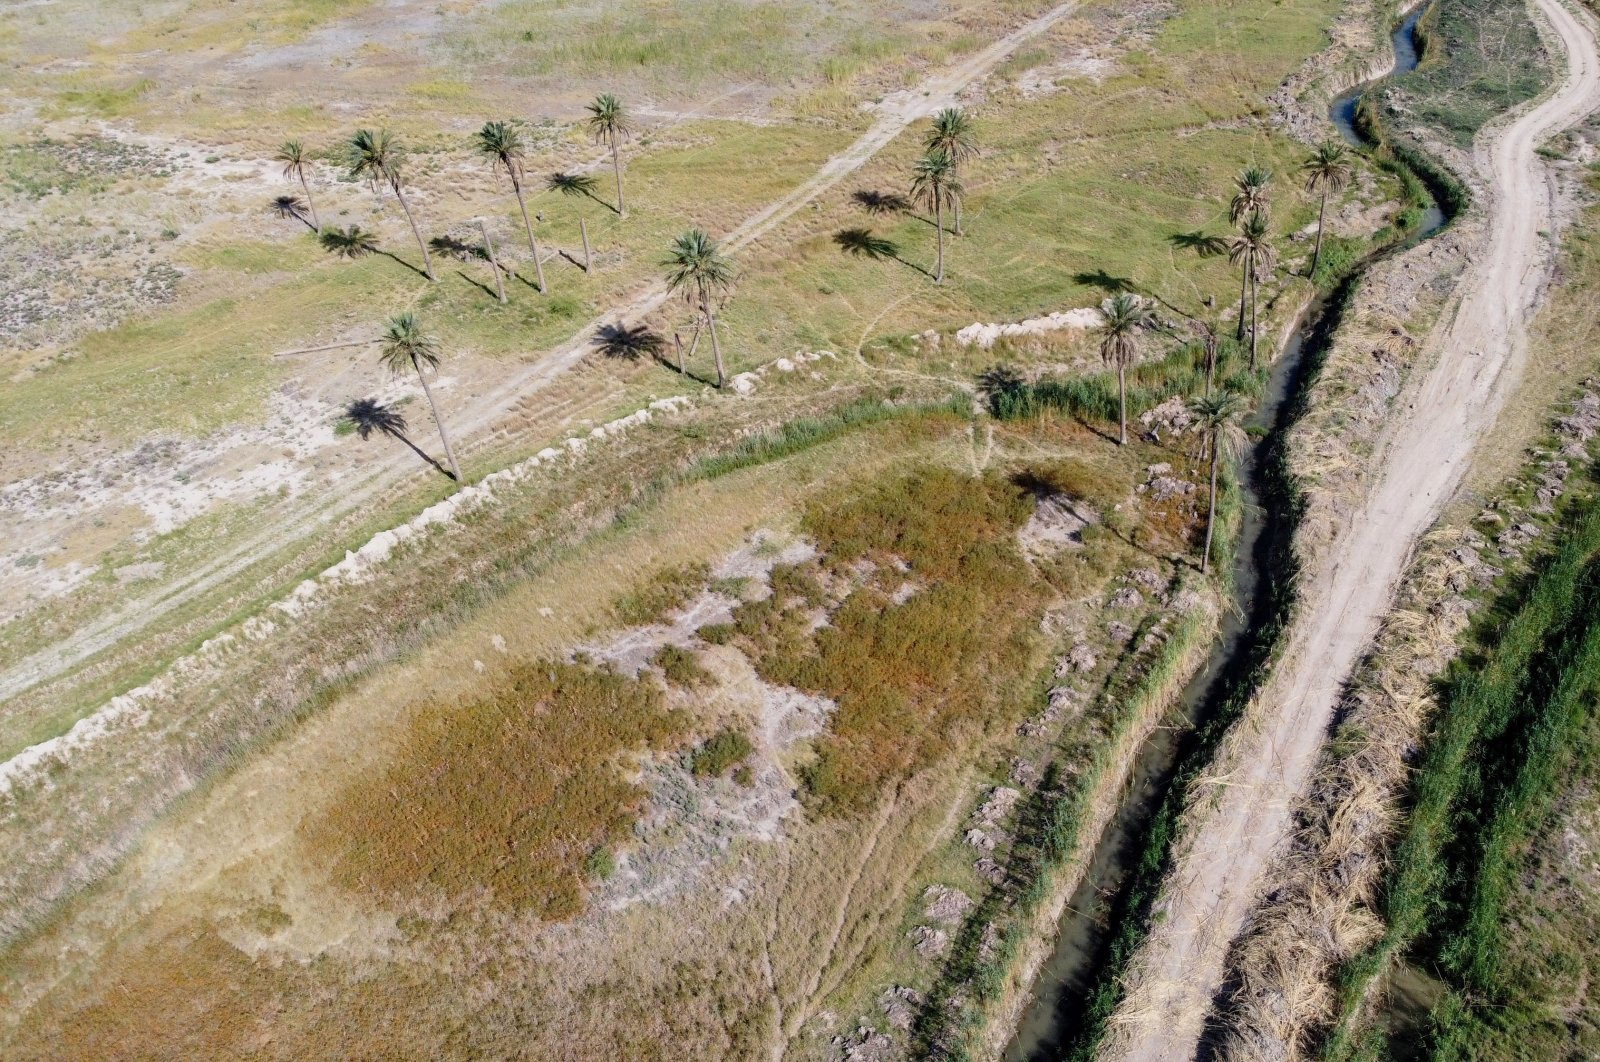 A general view of an orchard that dried out due to lack of water in Diyala province, Iraq, June 27, 2021. (Reuters Photo)